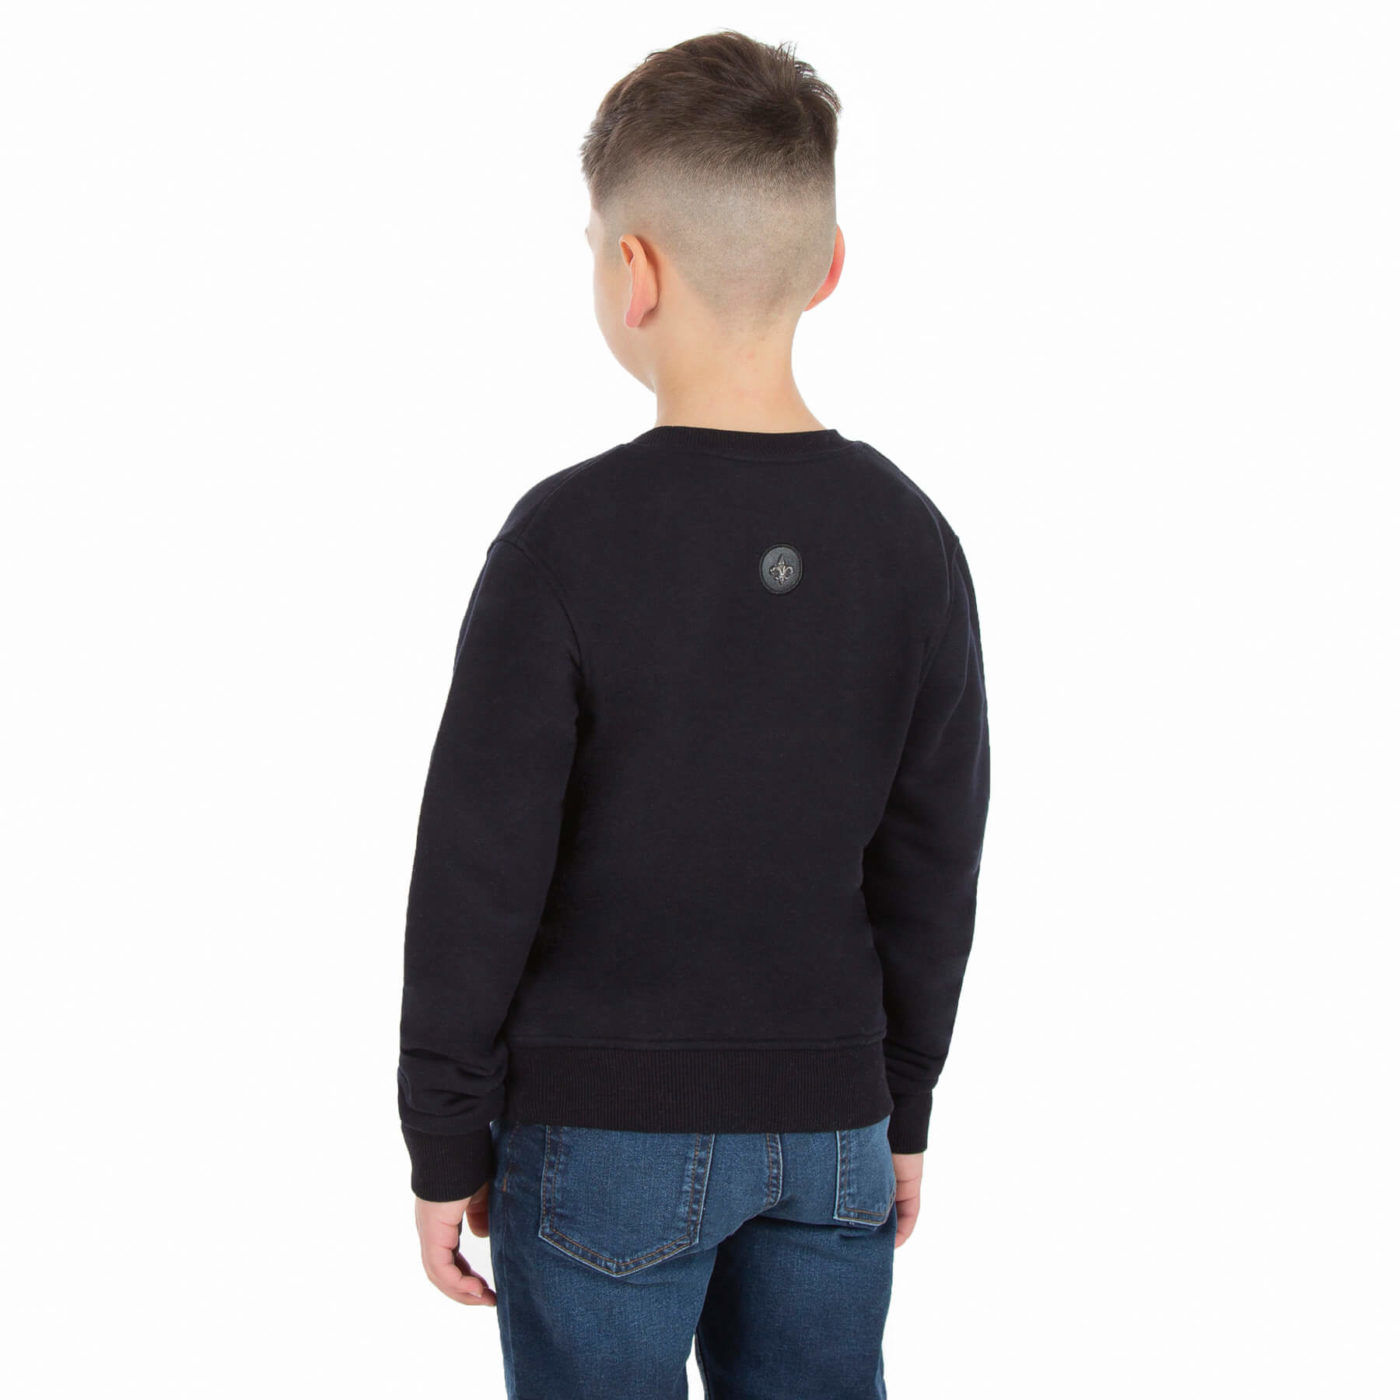 1075 – Richesse Crewneck JR-10